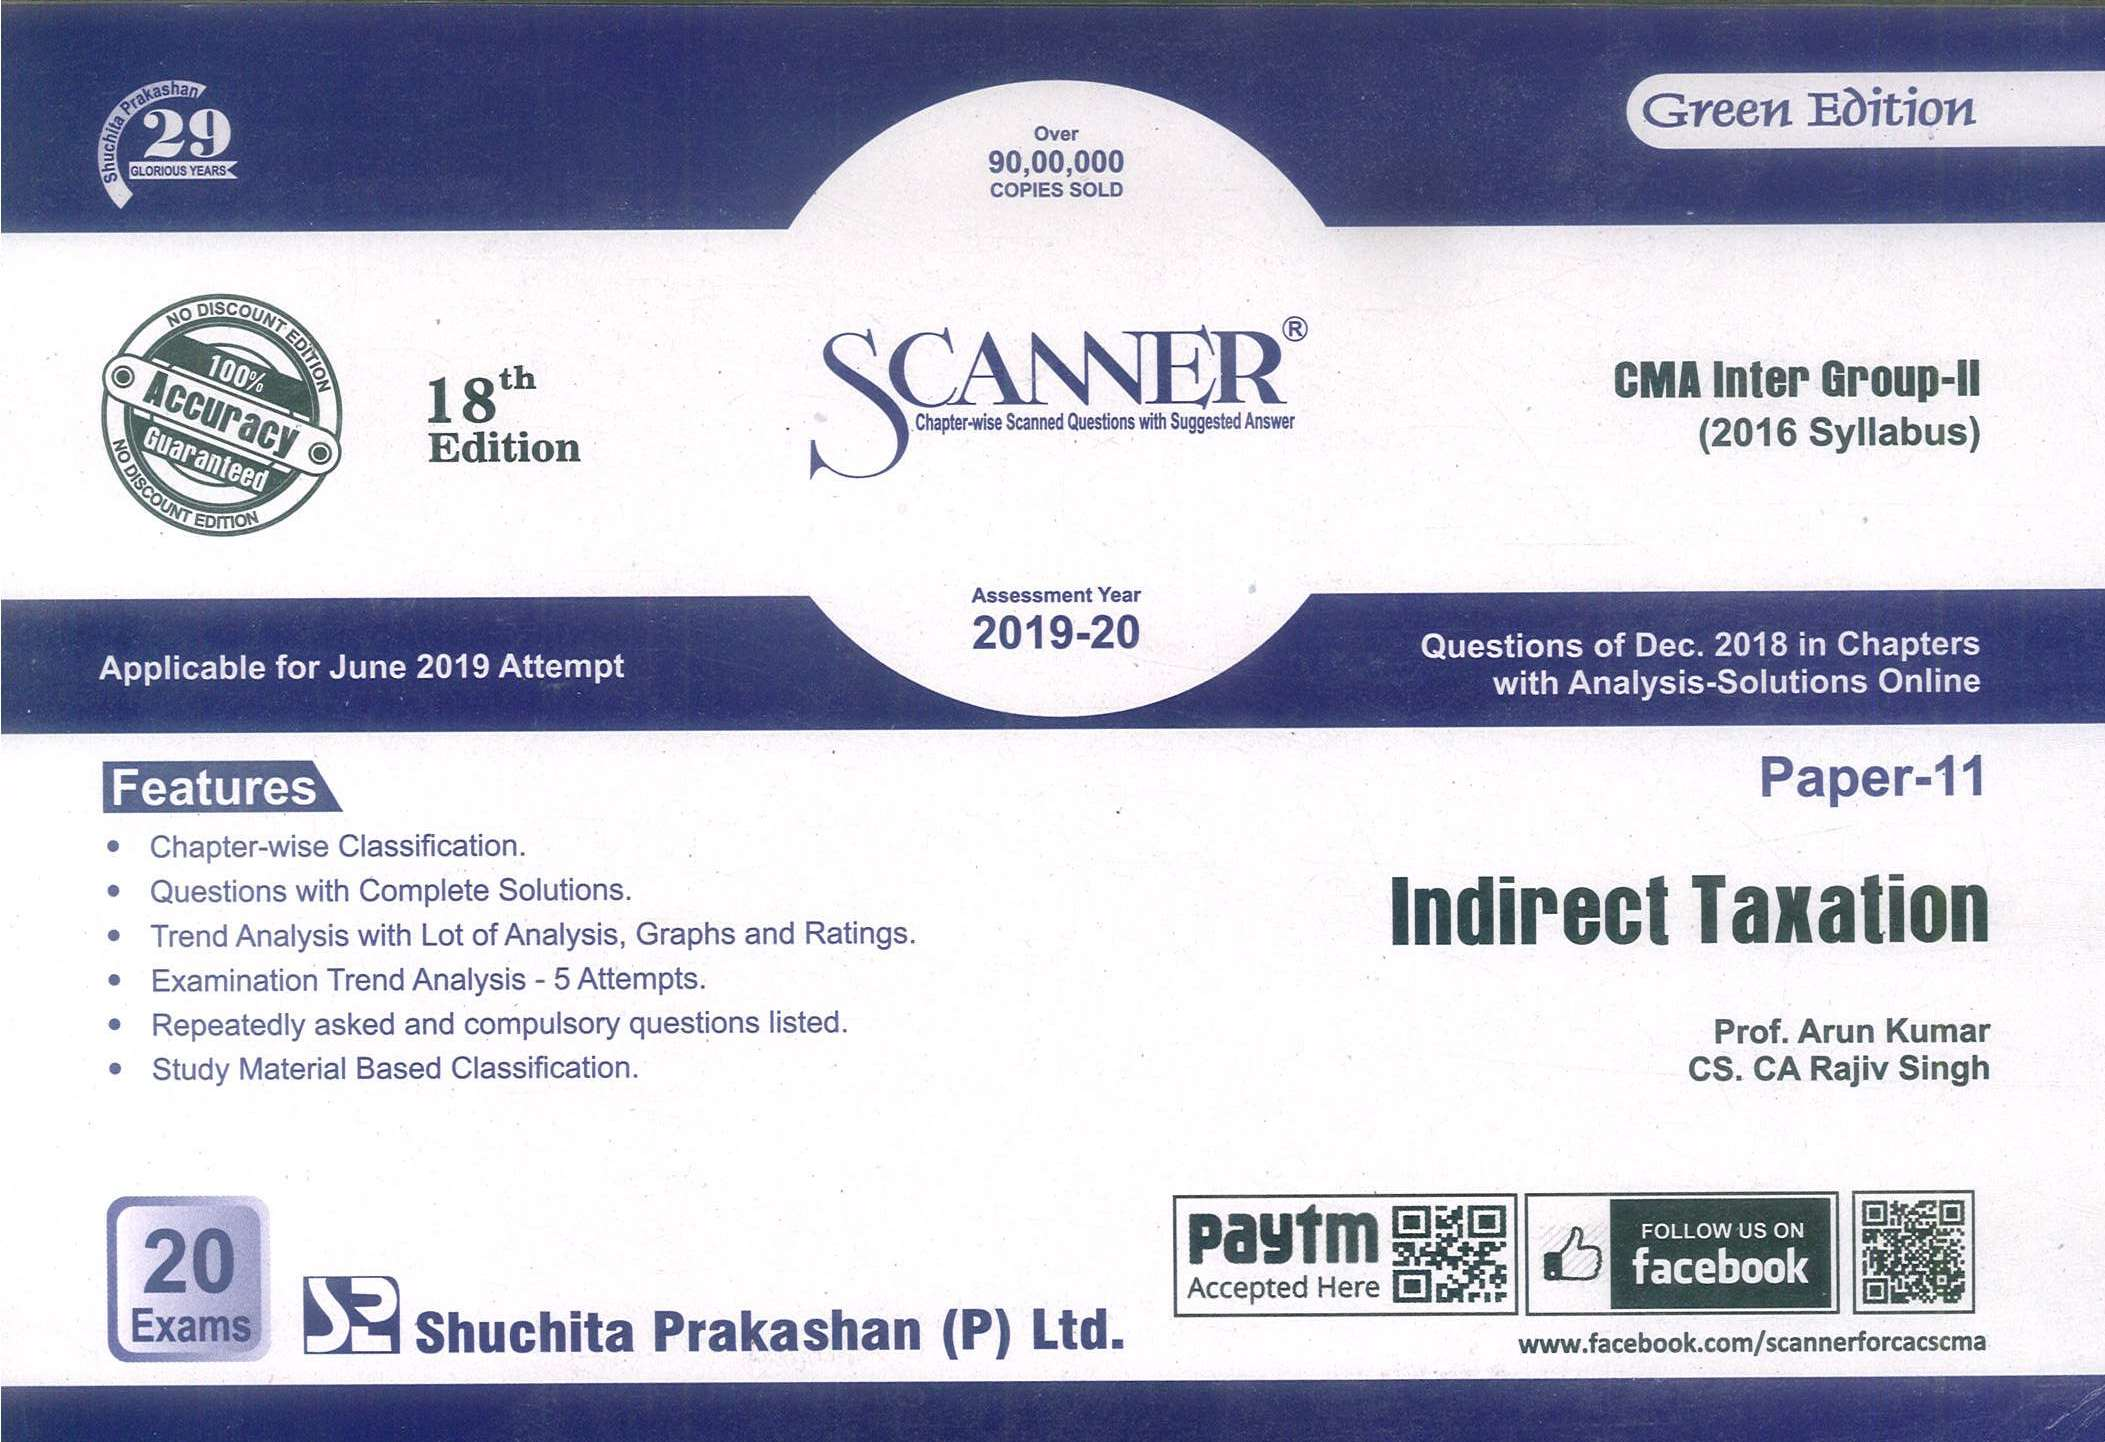 Shuchita Solved Scanner Indirect Taxation for CMA Inter Group-II Paper 11 (New Syllabus ) Applicable for June 2019 Attempt  by Prof. Arun Kumar ,CA. Raj k Agarwal and CS. CA Rajiv Singh (Shuchita Prakashan) Edition 18th 2019